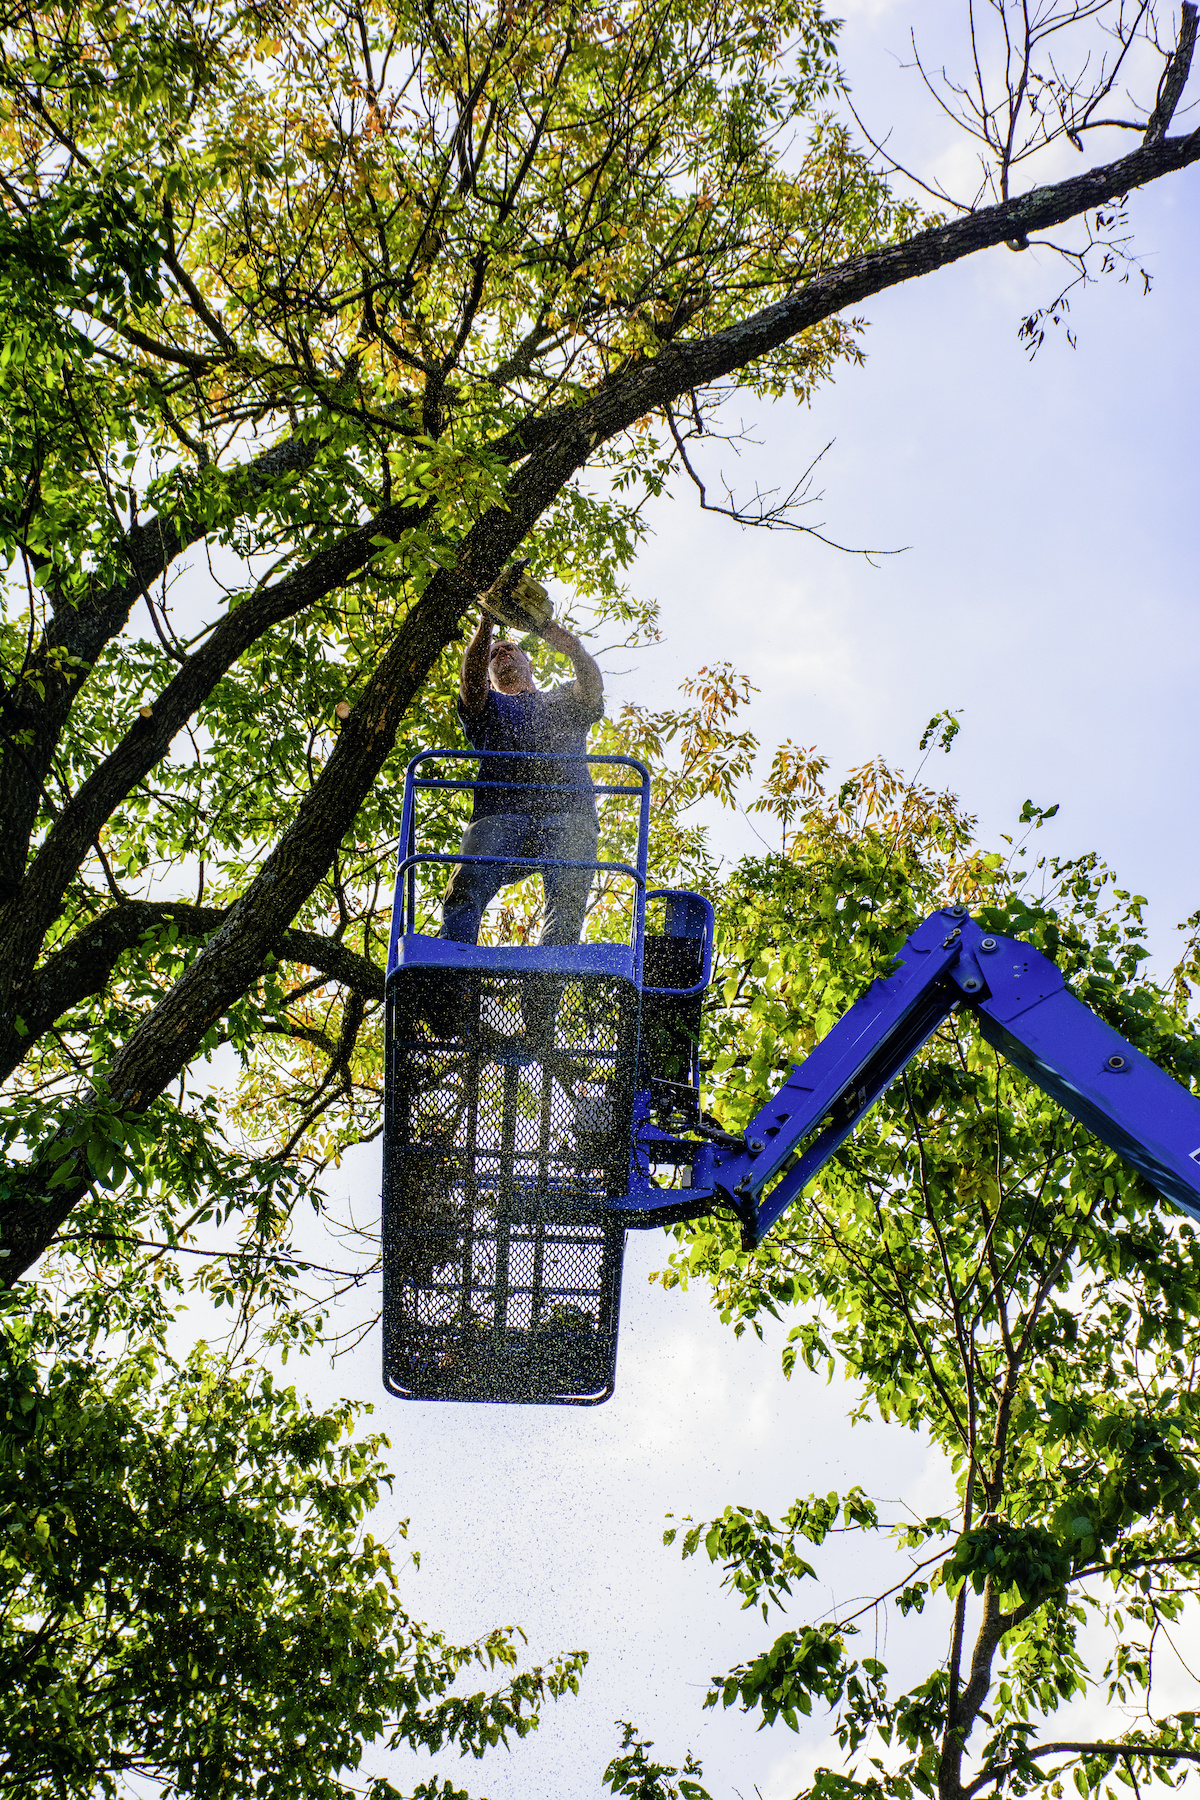 Five Benefits of Using an Aerial Lift for Tree Trimming - Are Your Trees Ready for the Next Big Florida Storm?